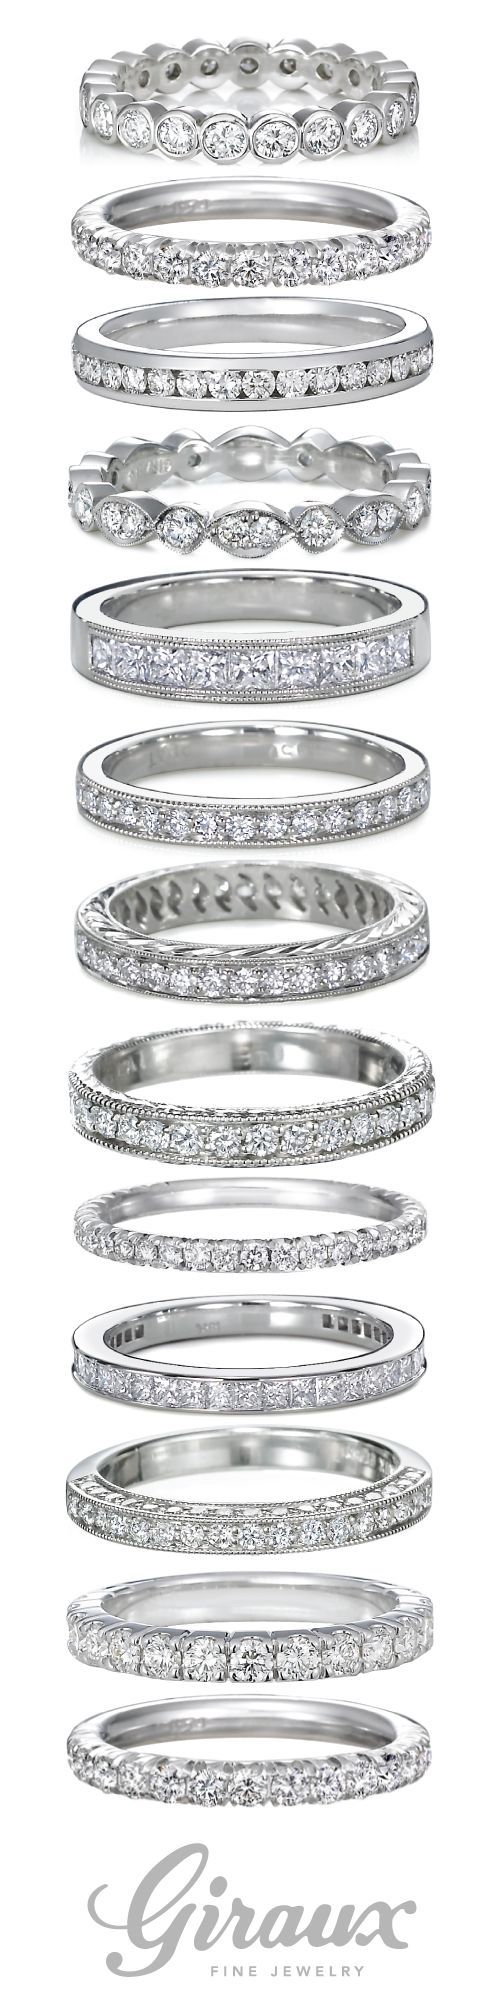 engagement rings and wedding bands / http://www.himisspuff.com/engagement-rings-wedding-rings/19/ anillos de compromiso | alianzas de boda | anillos de compromiso baratos http://amzn.to/297uk4t